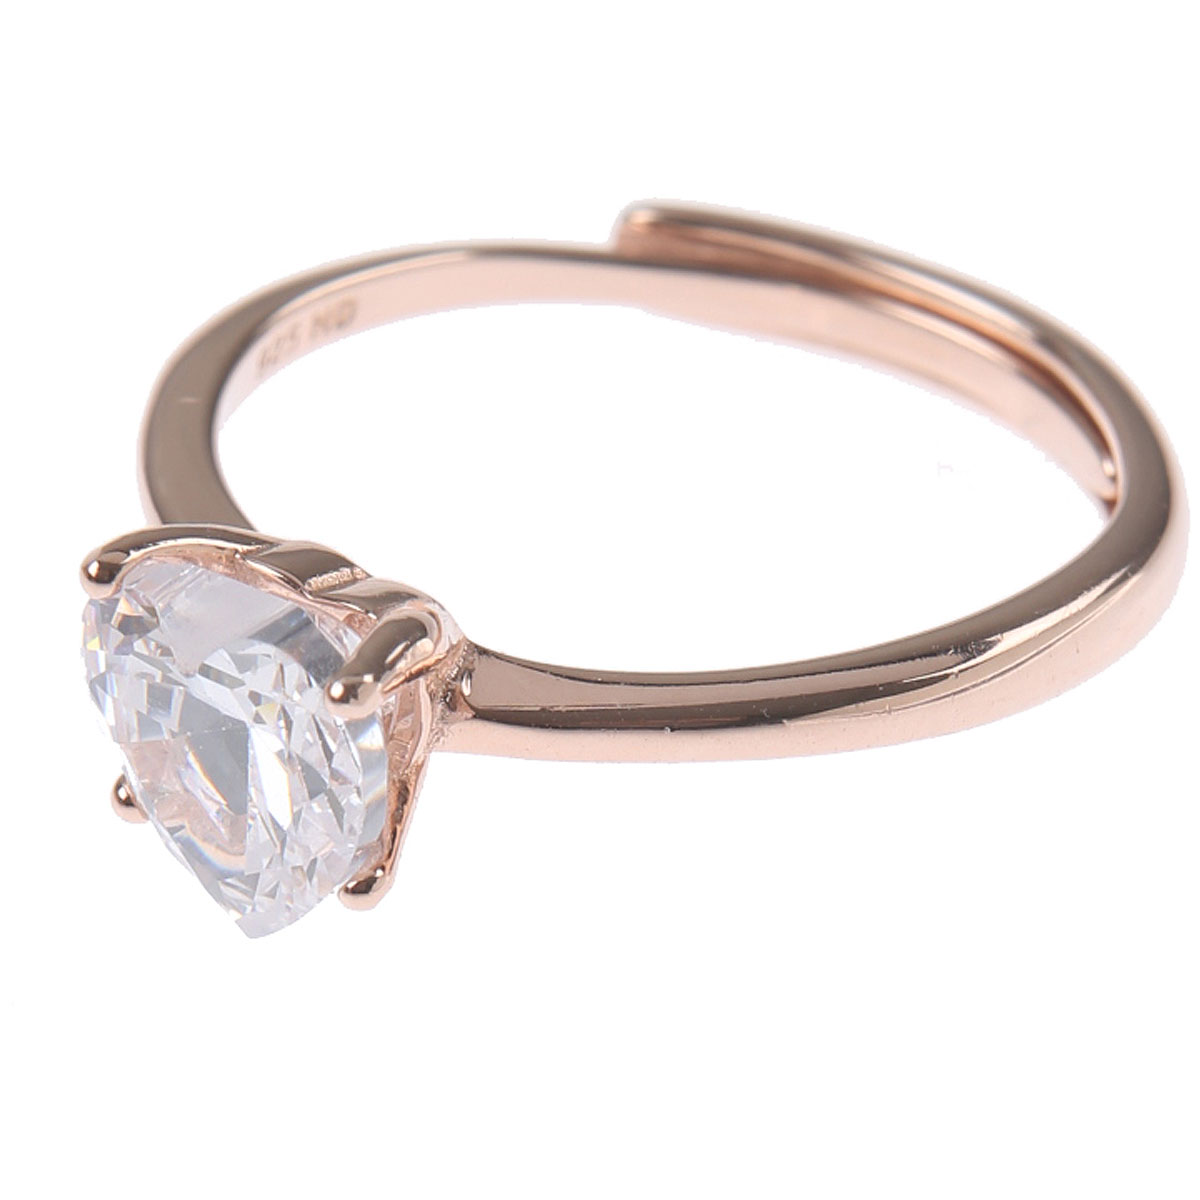 Francesca Angelone Ring for Women On Sale, White, Silver 925, 2019